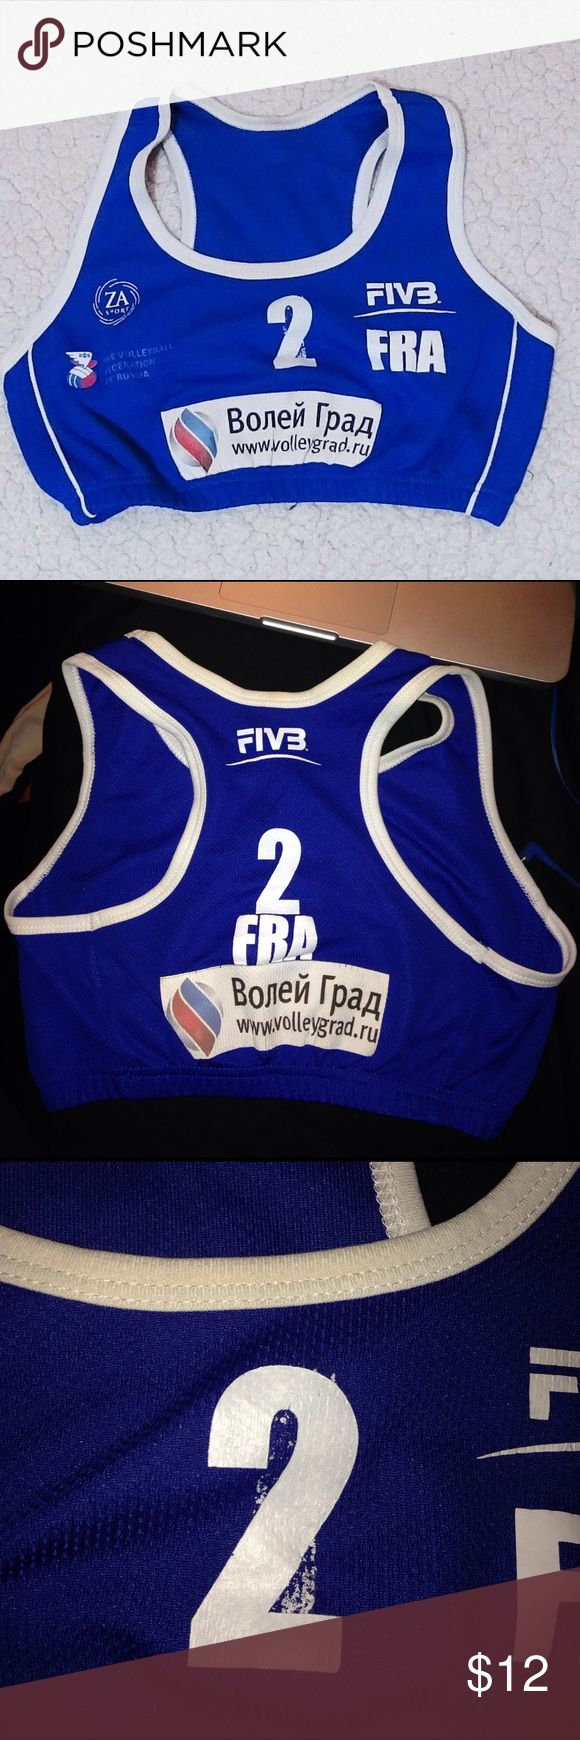 FIVB Beach Volleyball International Sport bra Sport bra from the FIVB beach volleyball tournament in Russia. Was worn for the French national team so has the letters FRA and number 2 on the front and back. Size Medium. The number 2 on the front was not printed well but this is still a very valuable sport bra from an international tournament. Tag: ZA sport - The Volleyball Federation of Russia Other